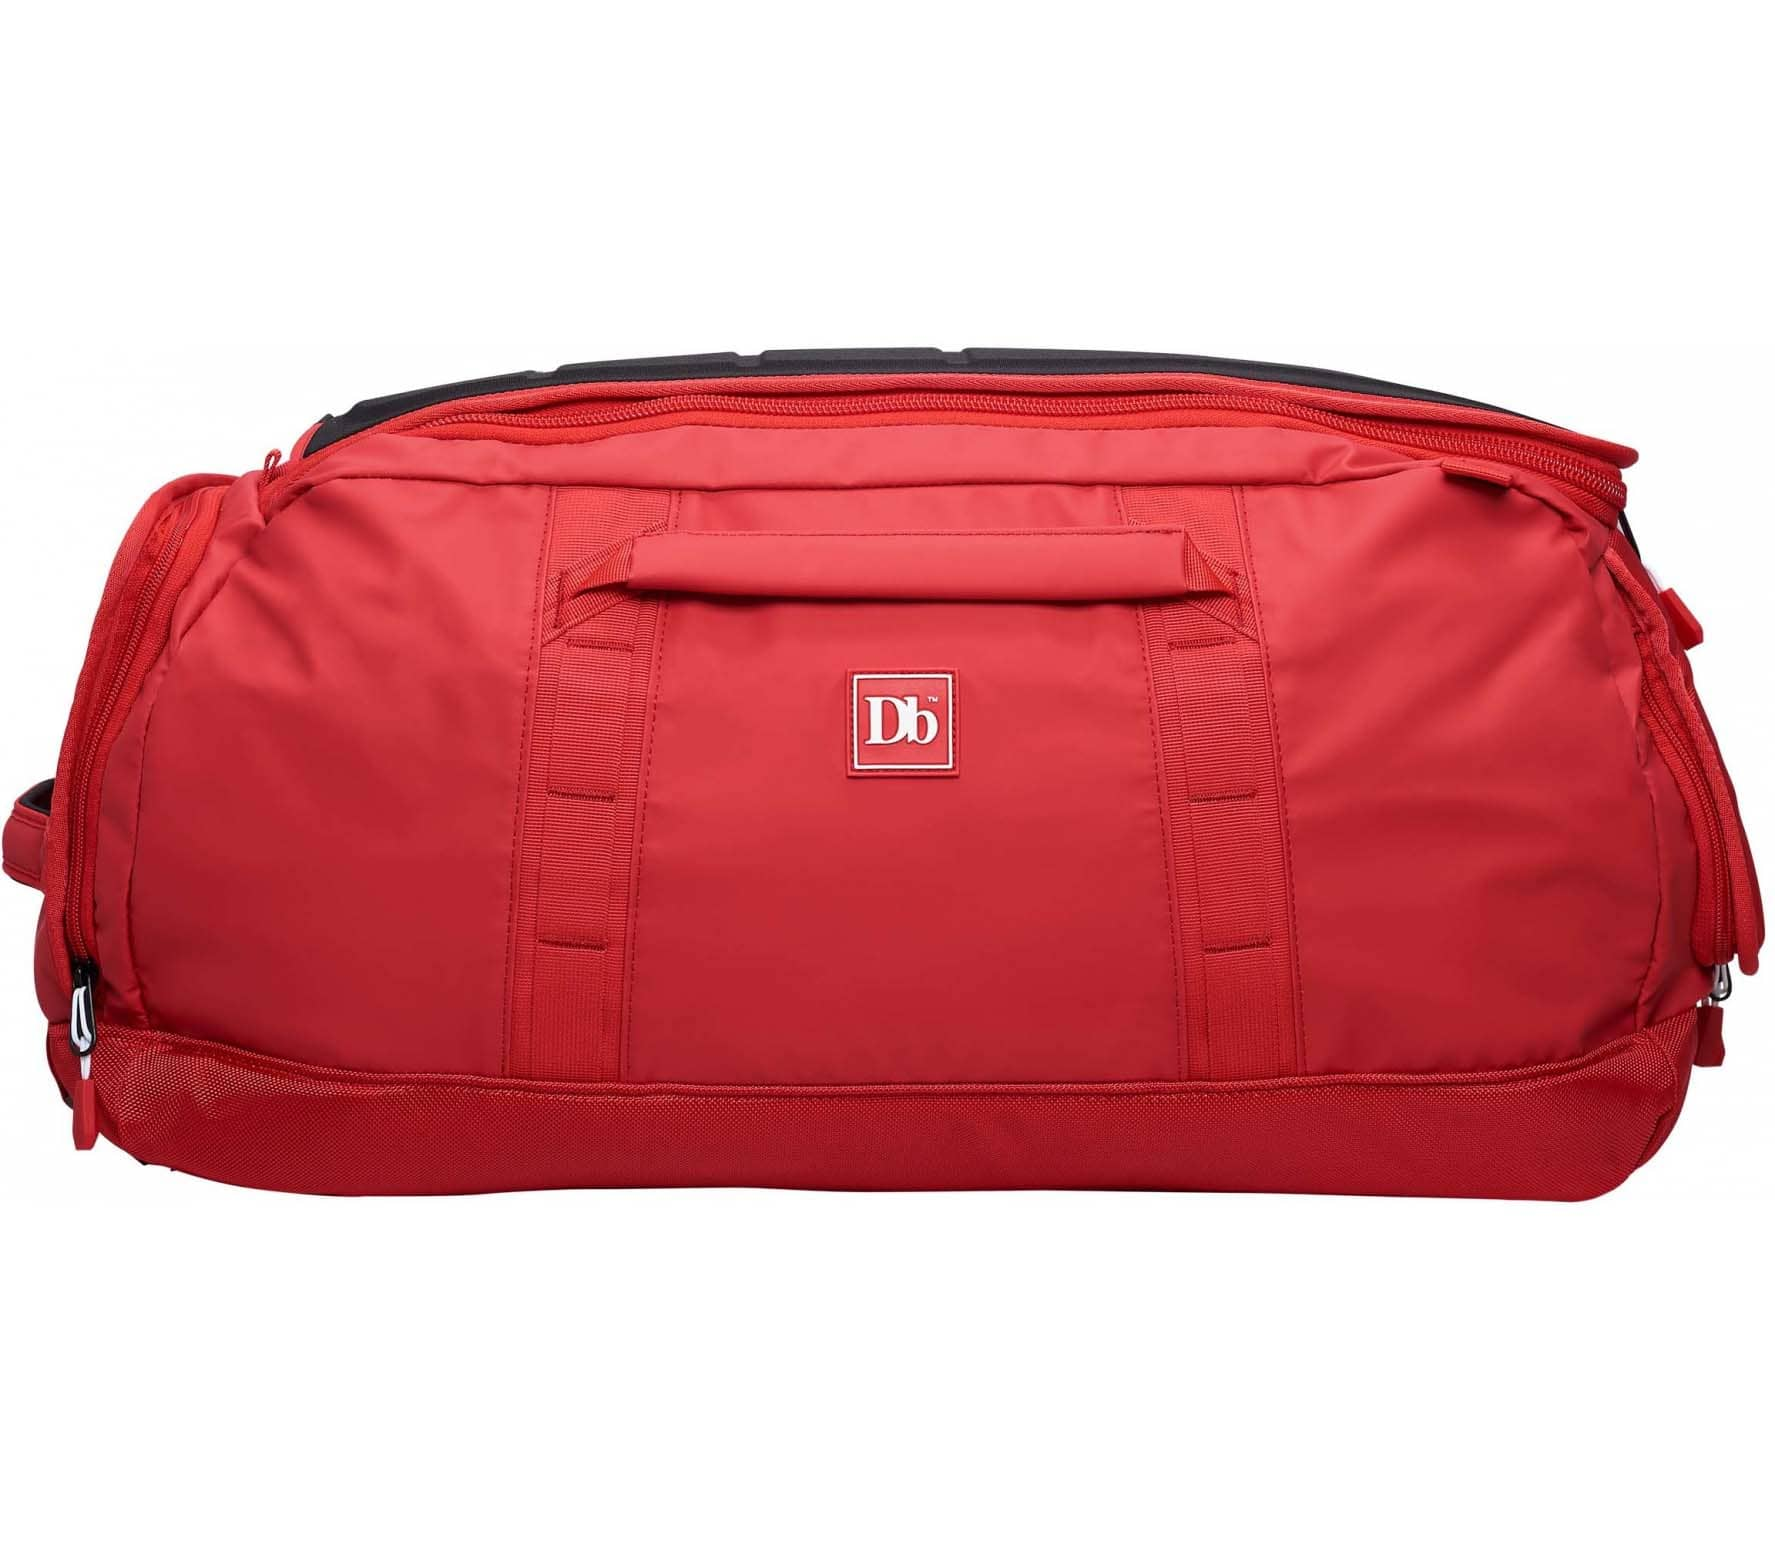 Douchebags - The Carryall 65L Outdoor valise (red)